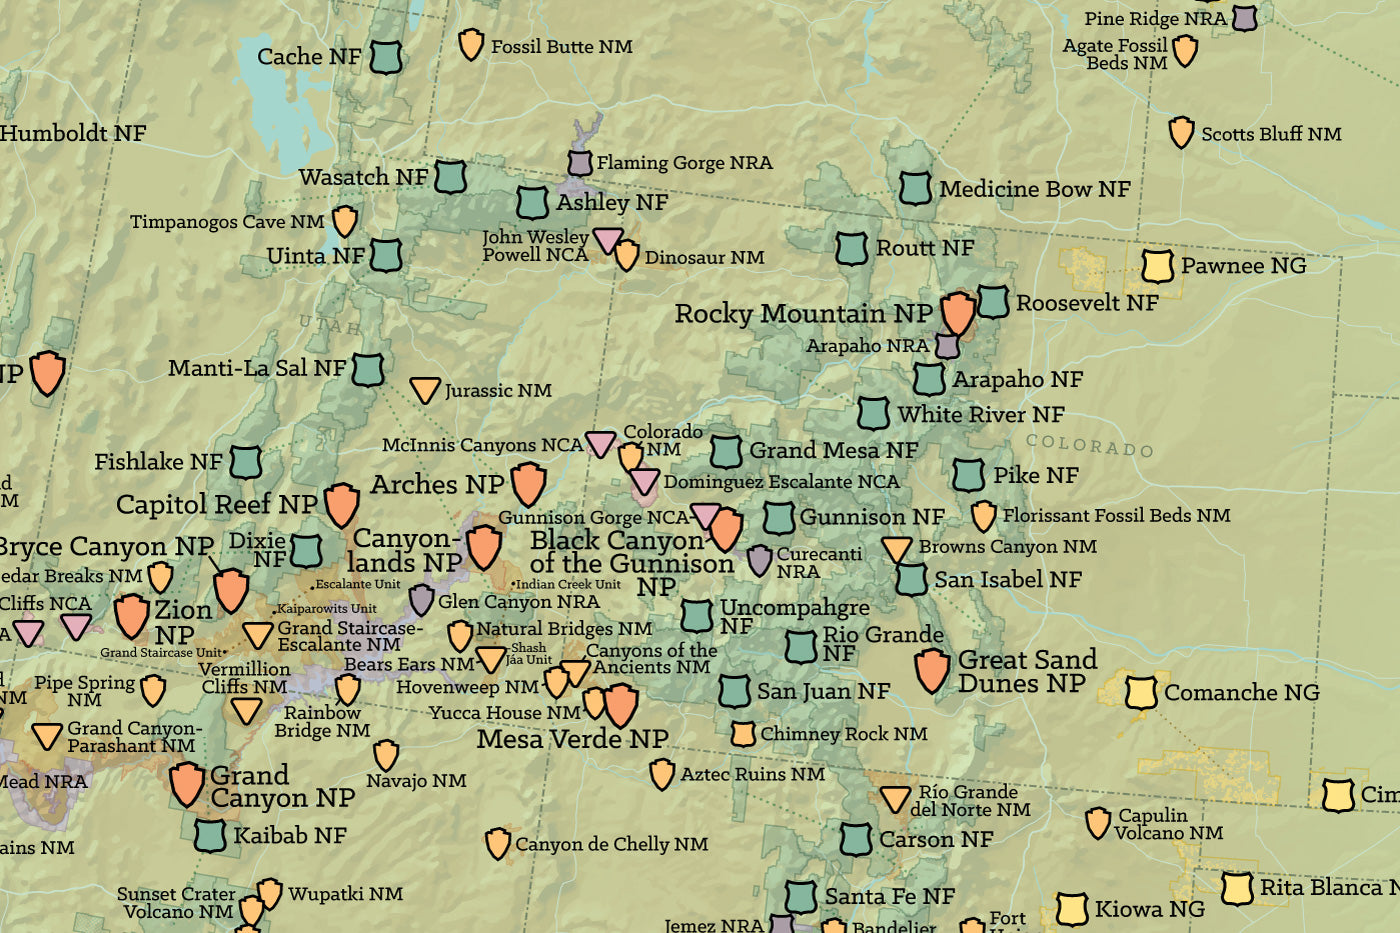 US National Parks, Monuments & Forests Map 24x36 Poster - Best Maps Ever